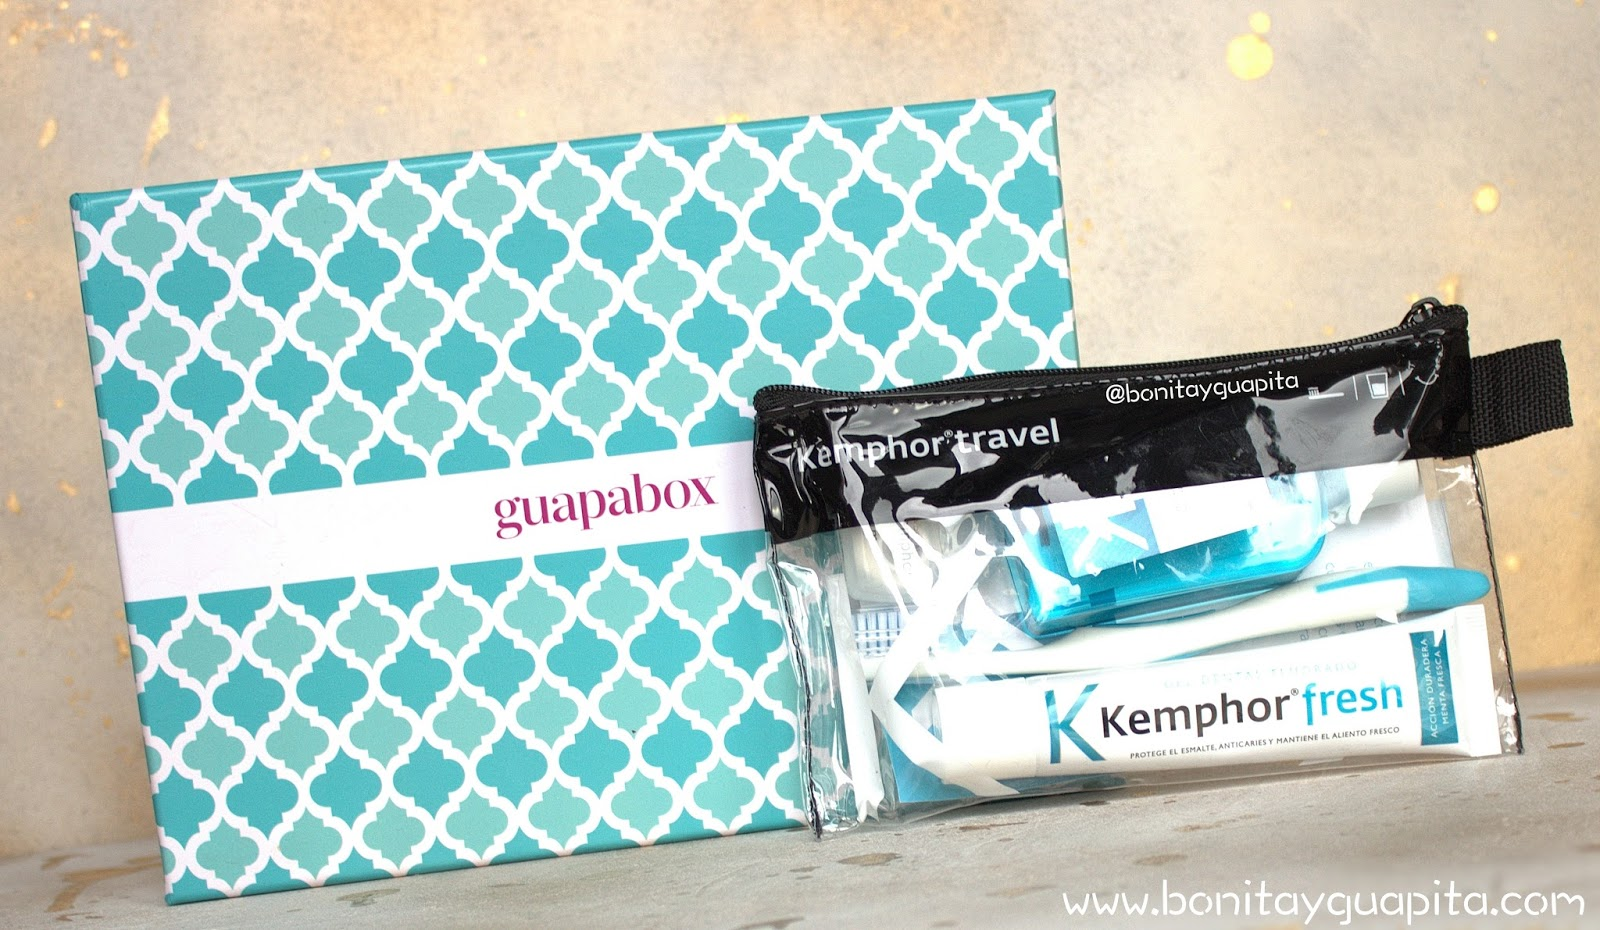 kit kemphor travel